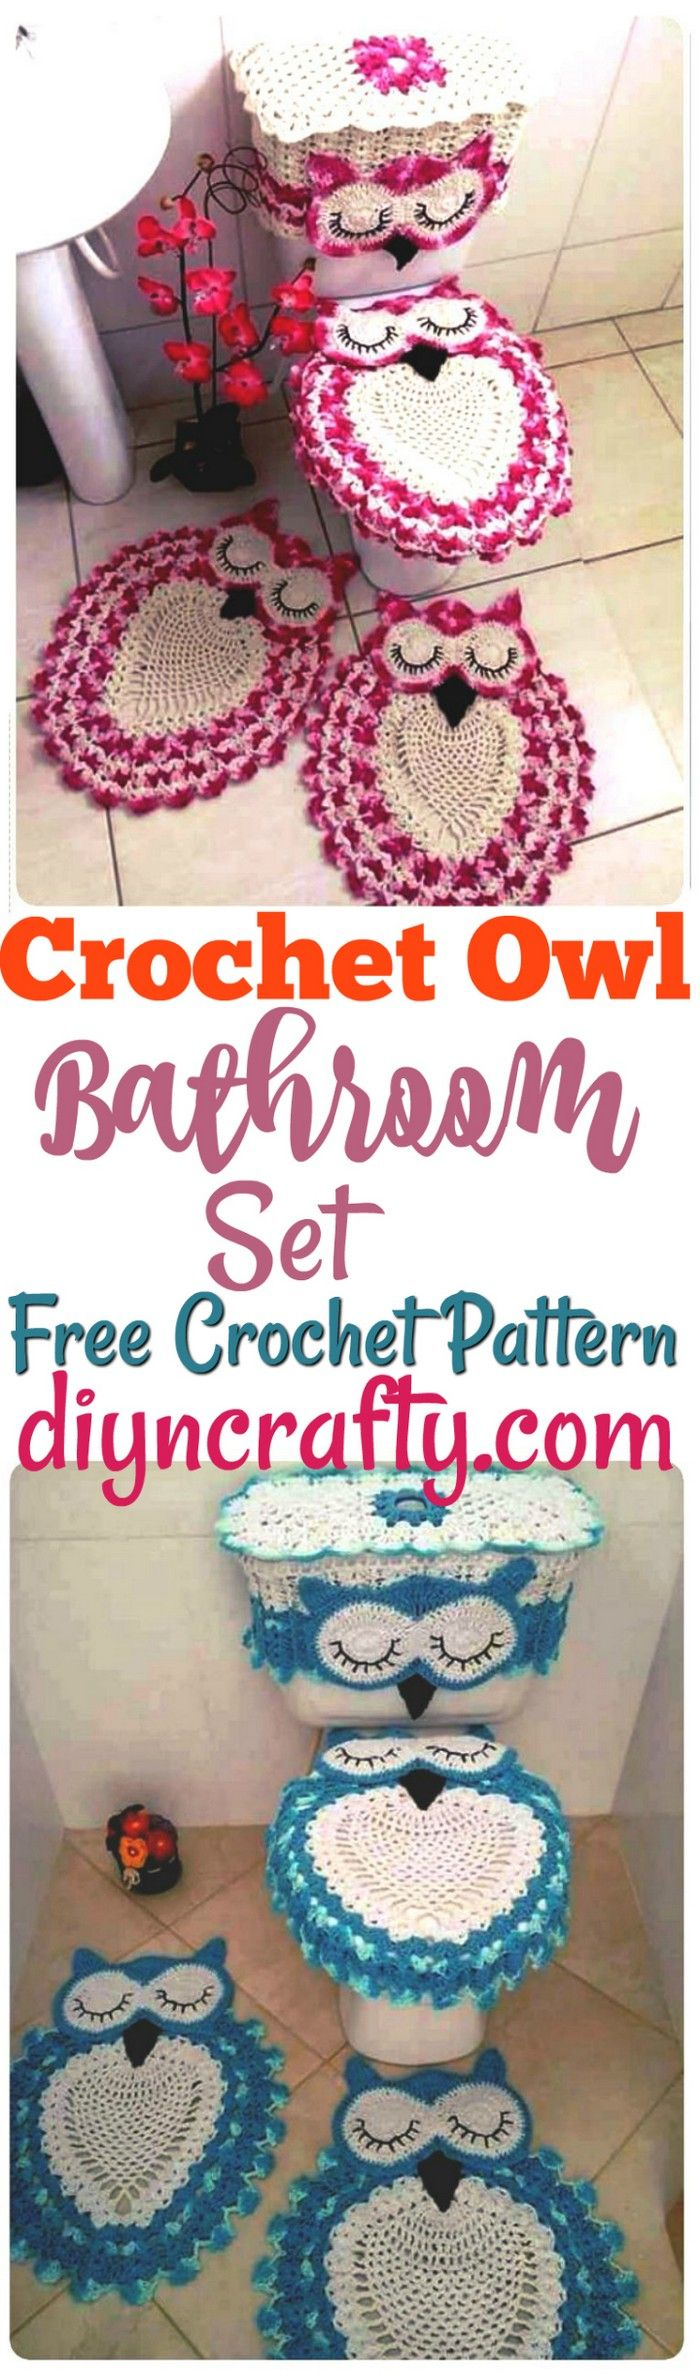 I am going to introducing you 5 mind-blowing and chic free crochet bathroom set ideas to make your bathroom gorgeous.